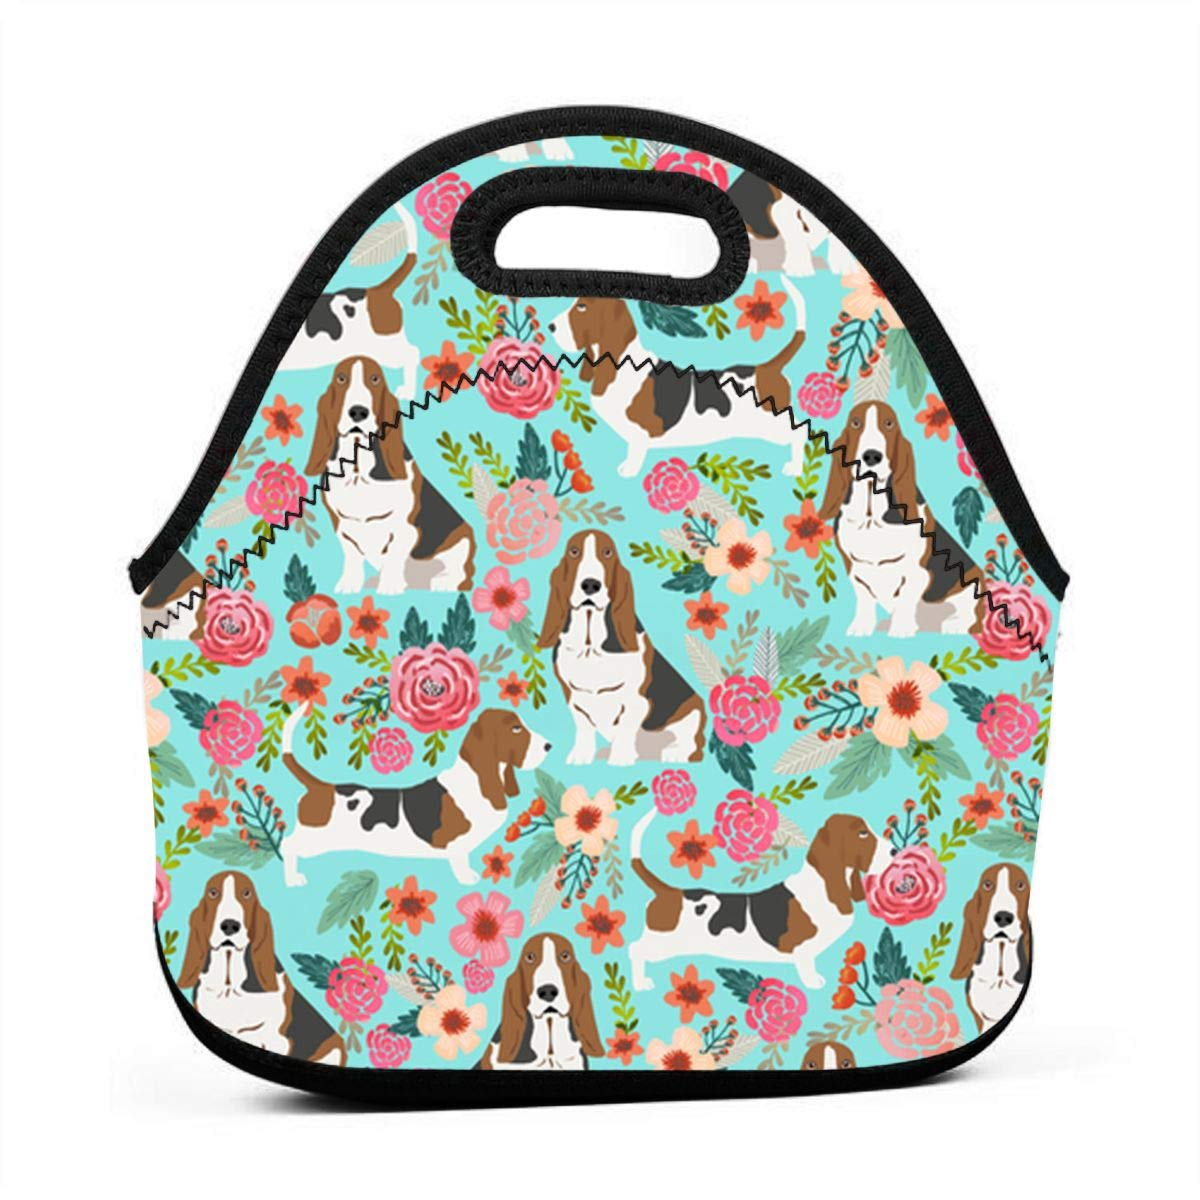 4ff415667d94 ONUPMIN Ideal Gifts - Insulated Lunch Bag Sweet Basset Hound and Vintage  Florals Bento Lunch Bag Thermal Cooler Lunch Pouch with Portable Carrying  Bag ...